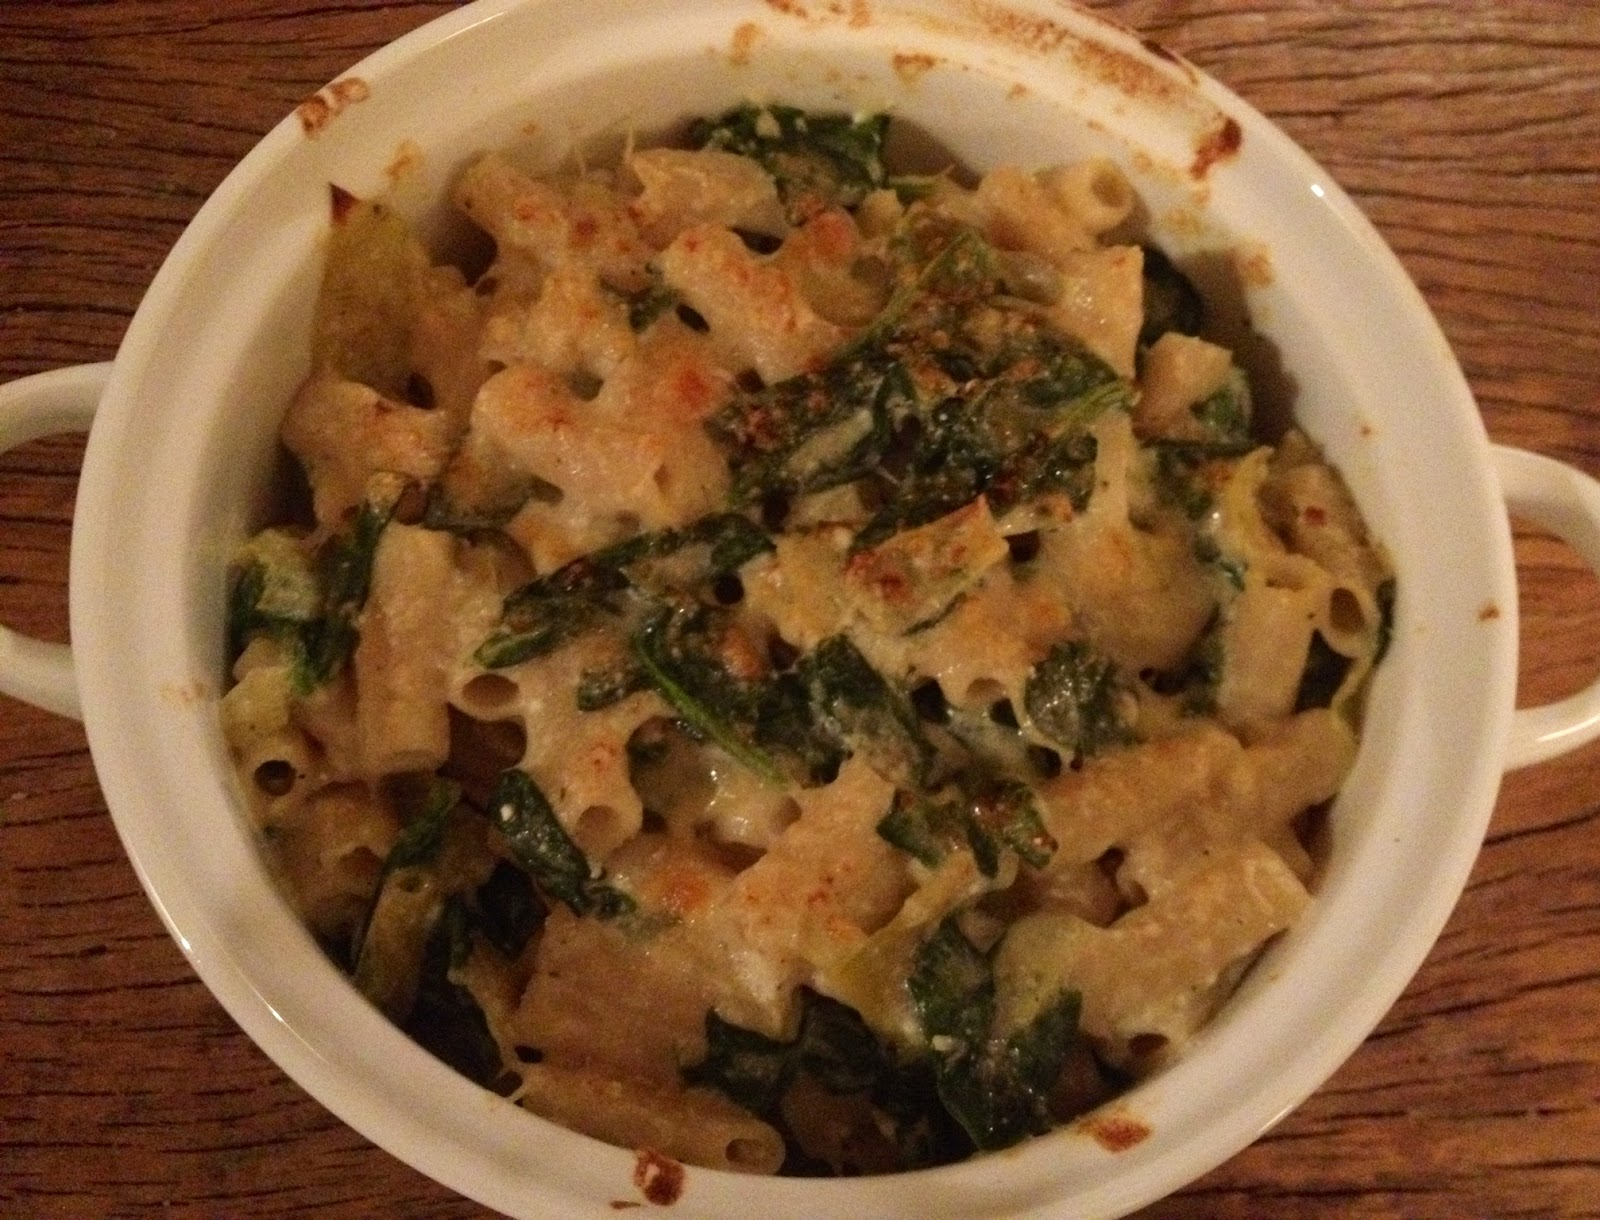 The Sustainable Palate: Baked Artichoke, Spinach, and Ricotta Penne